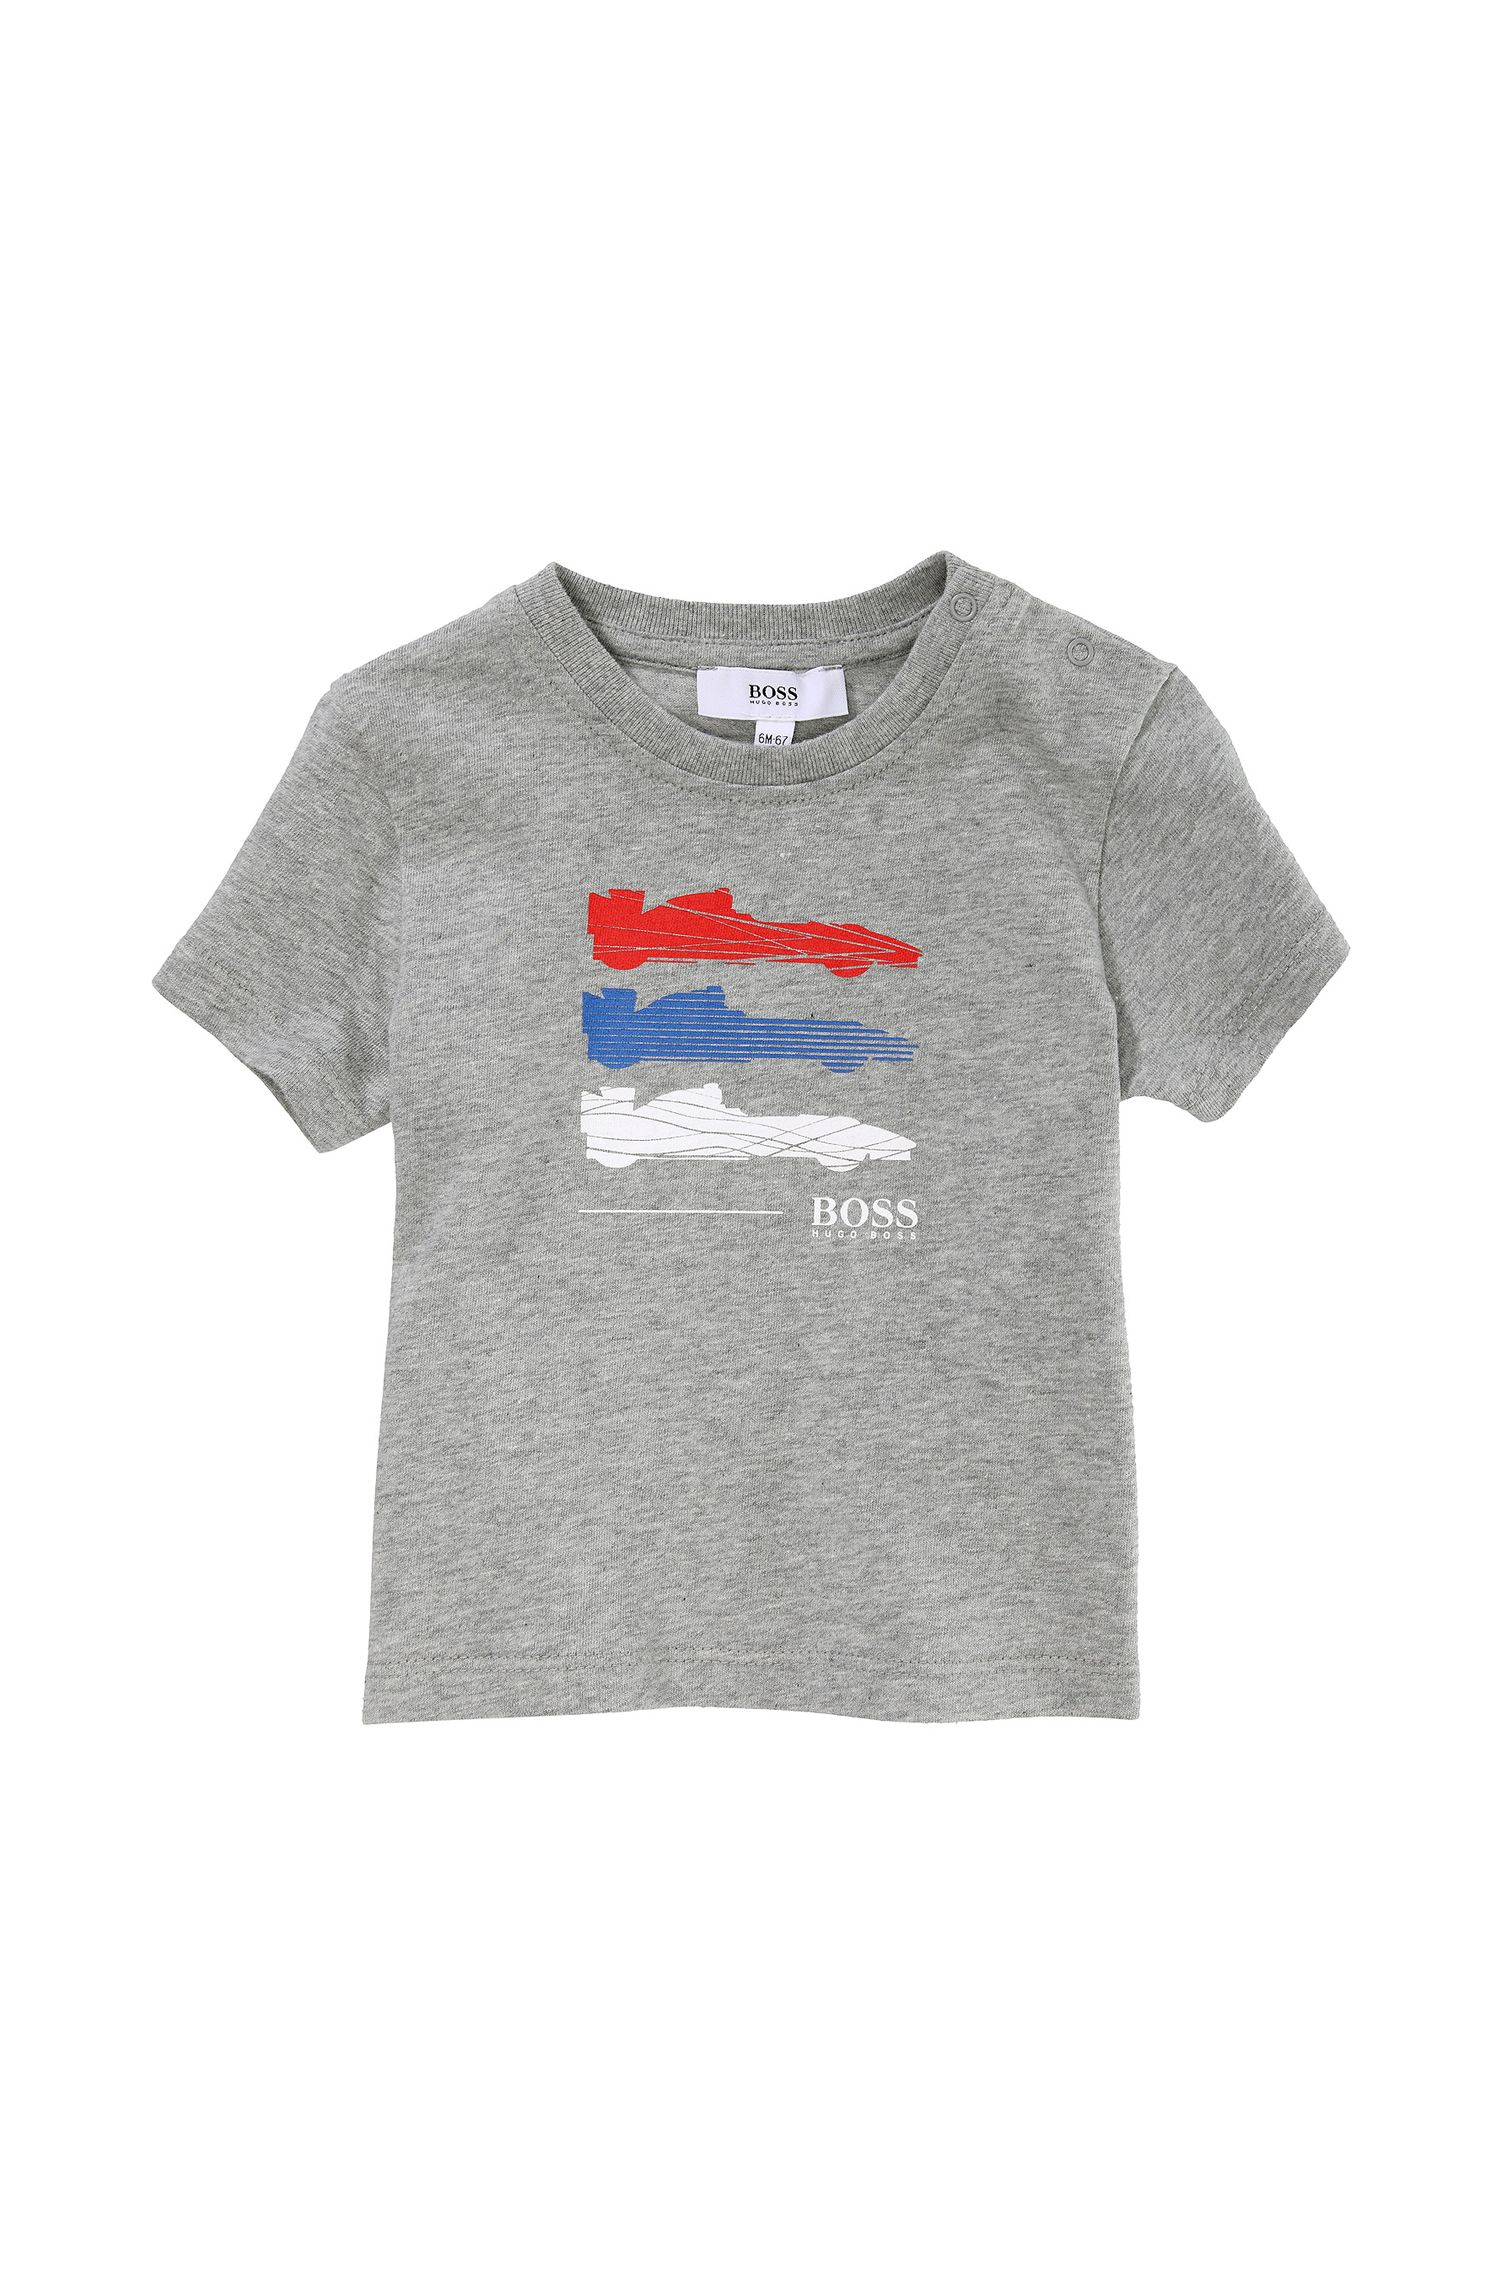 'J05303' | Toddler Cotton Jersey Graphic Print T-Shirt